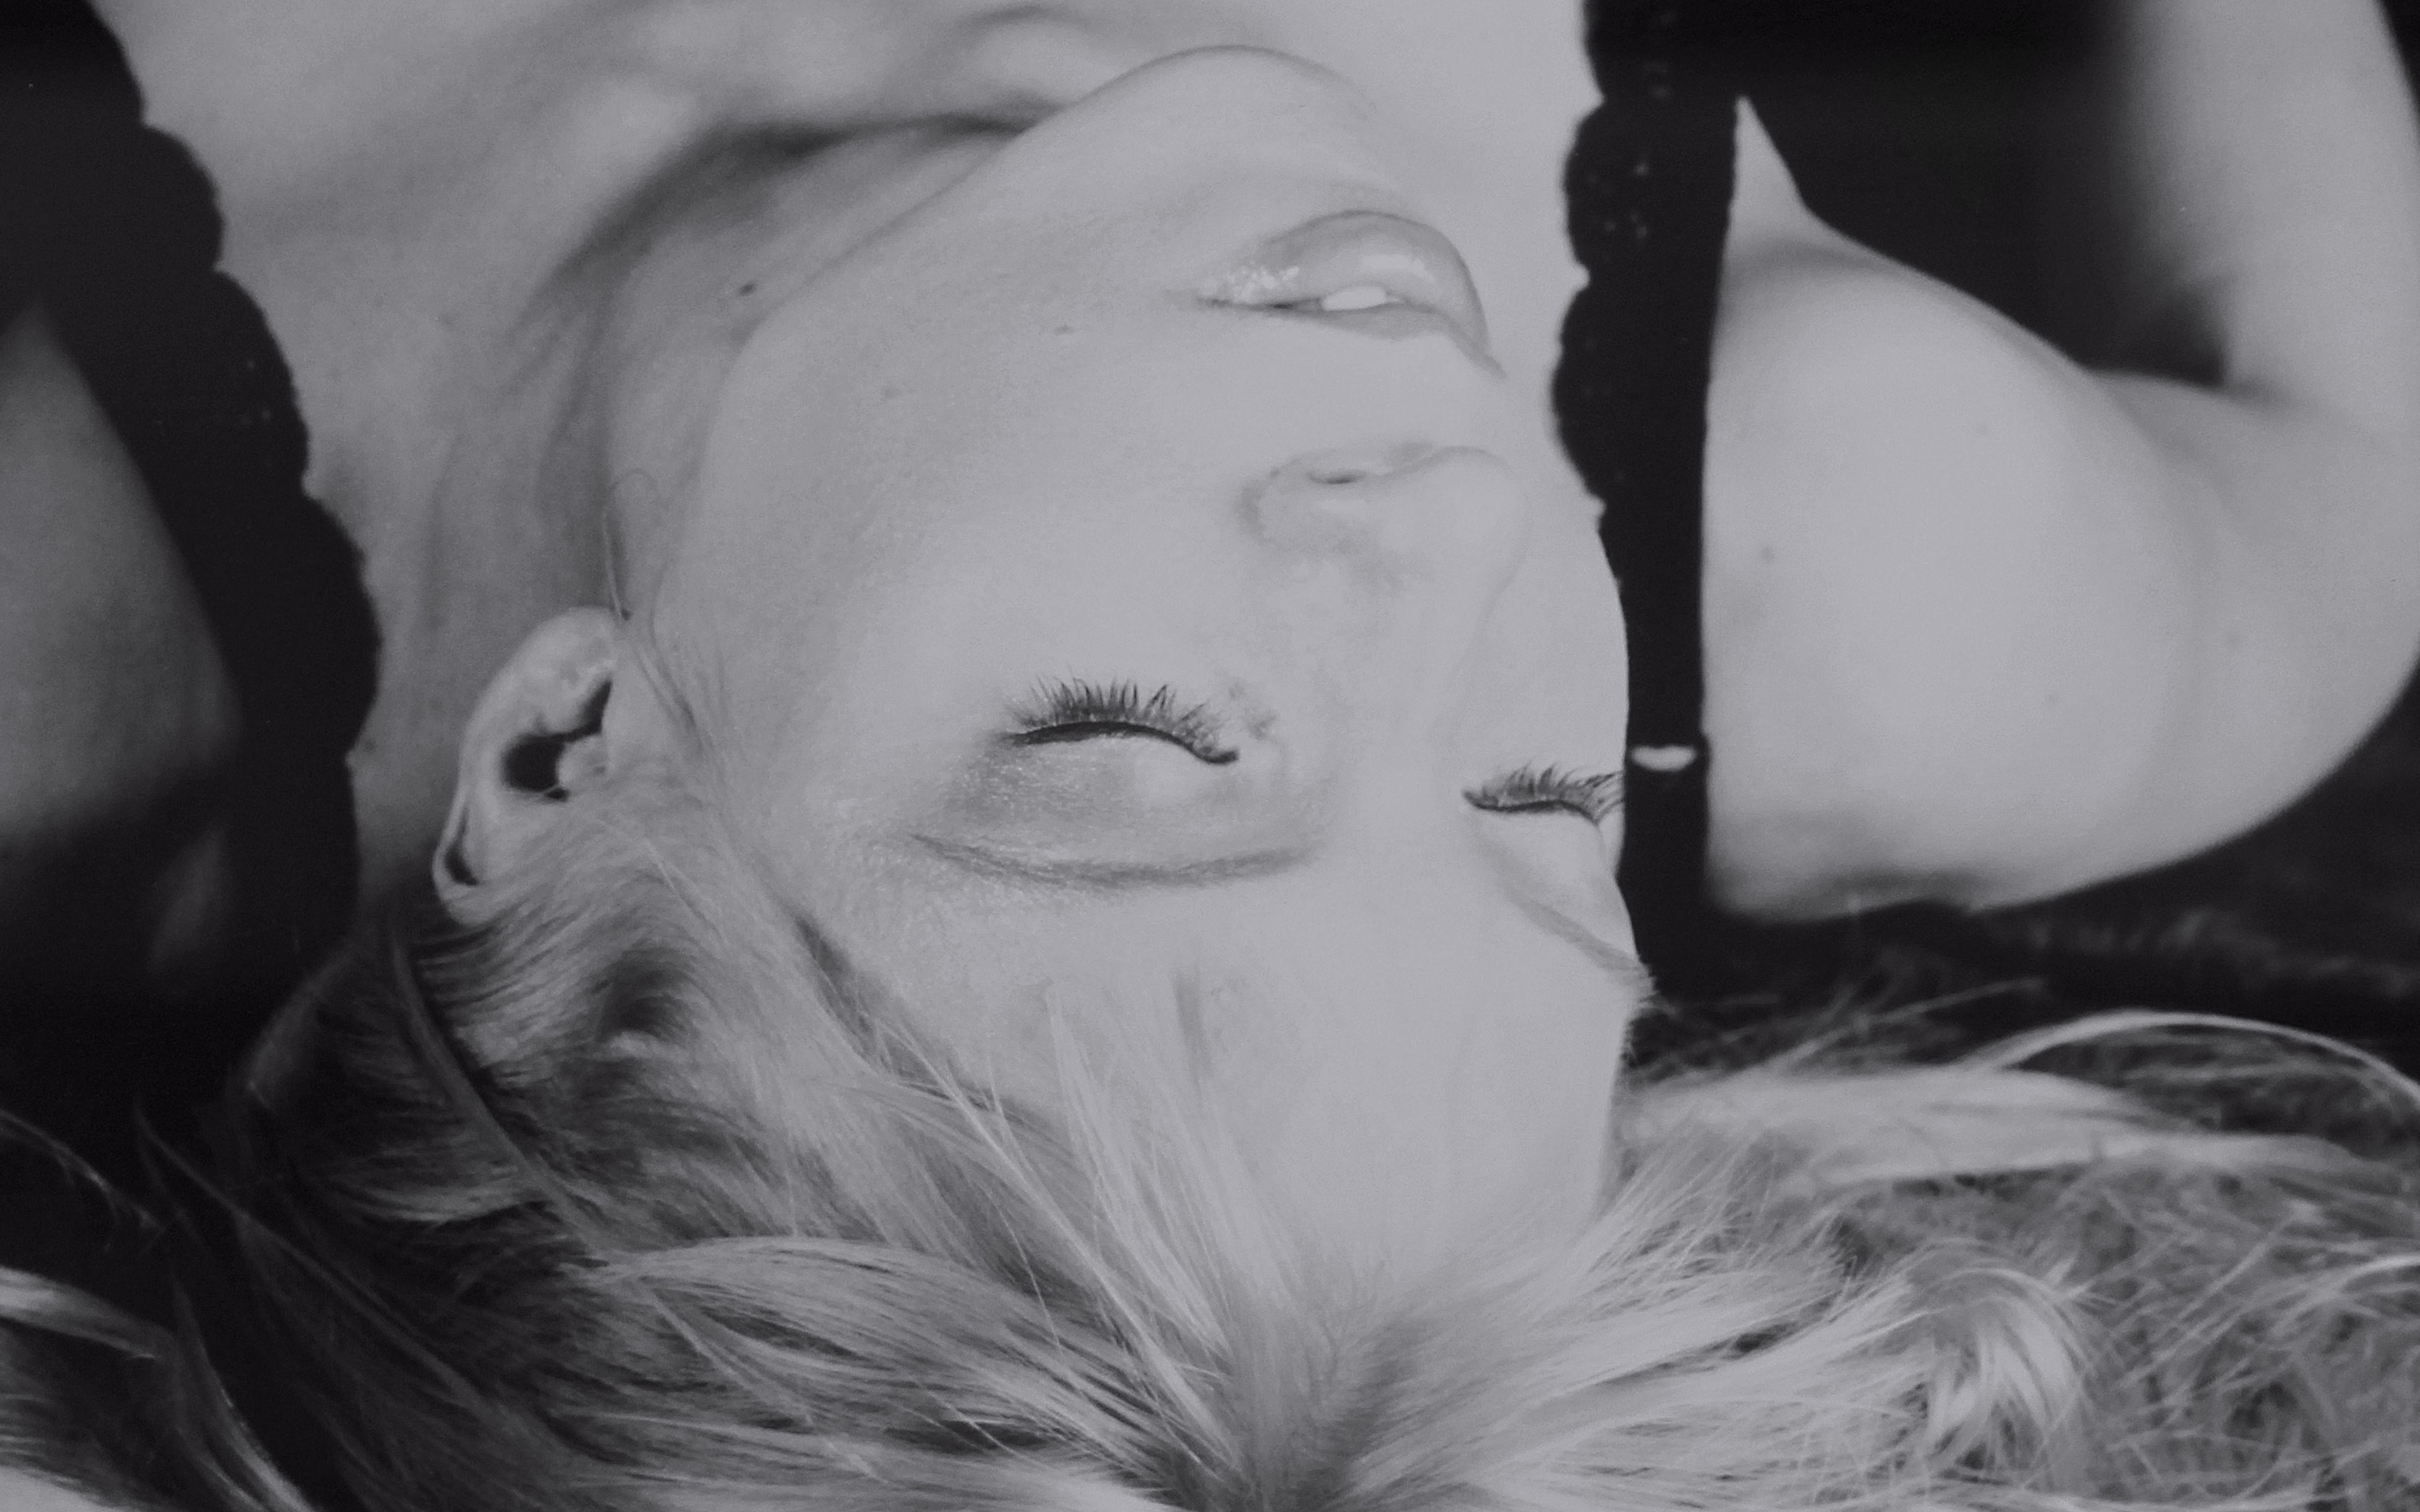 Image: Suvi Mahonen laying down, eyes closed, black and white.